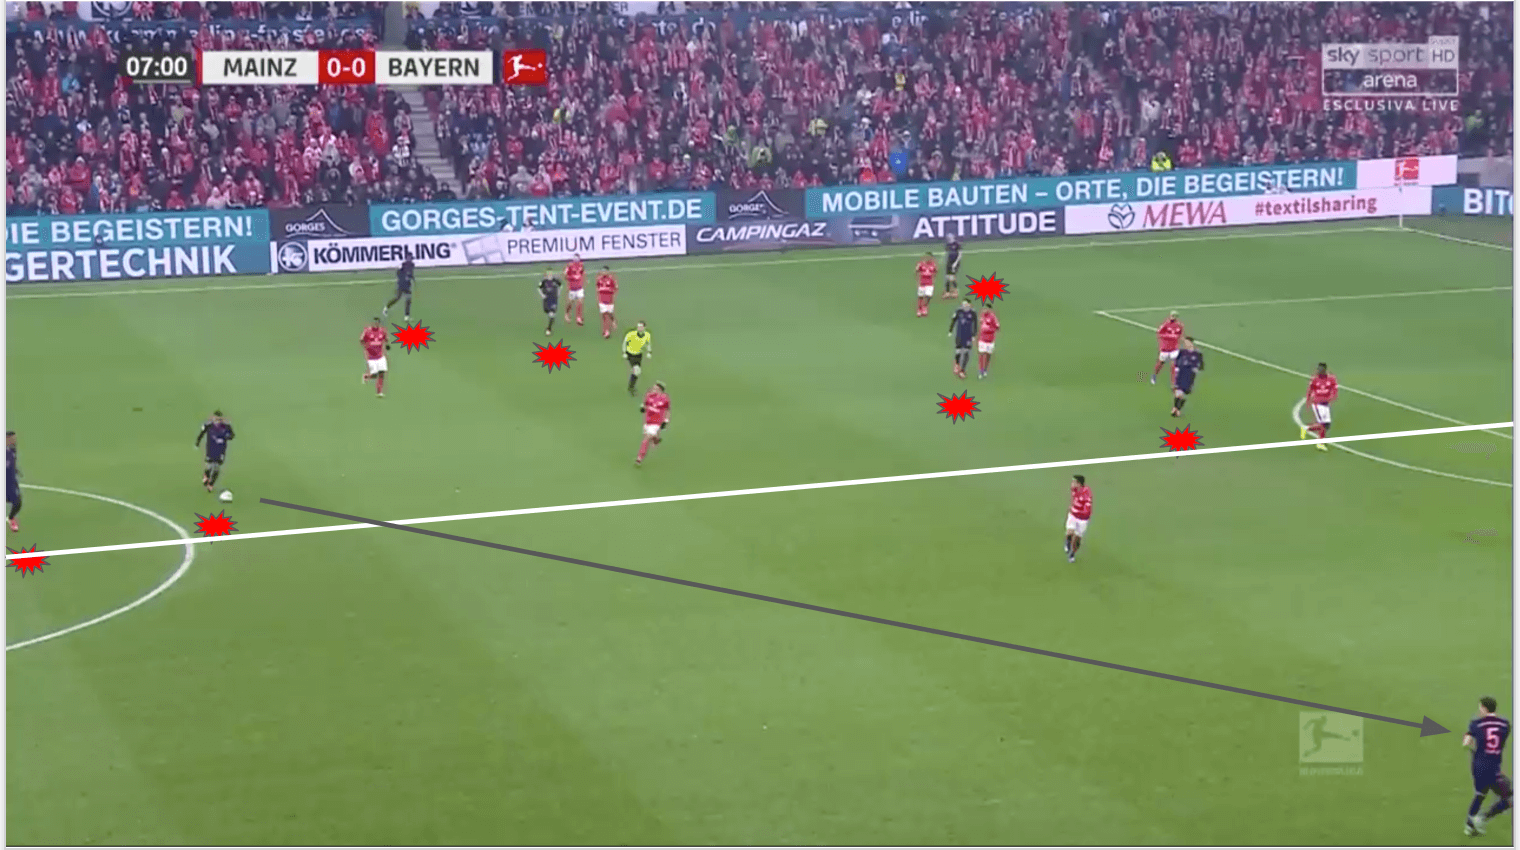 Bundesliga 2019/20: Bayern Munich vs Mainz - tactical analysis tactics